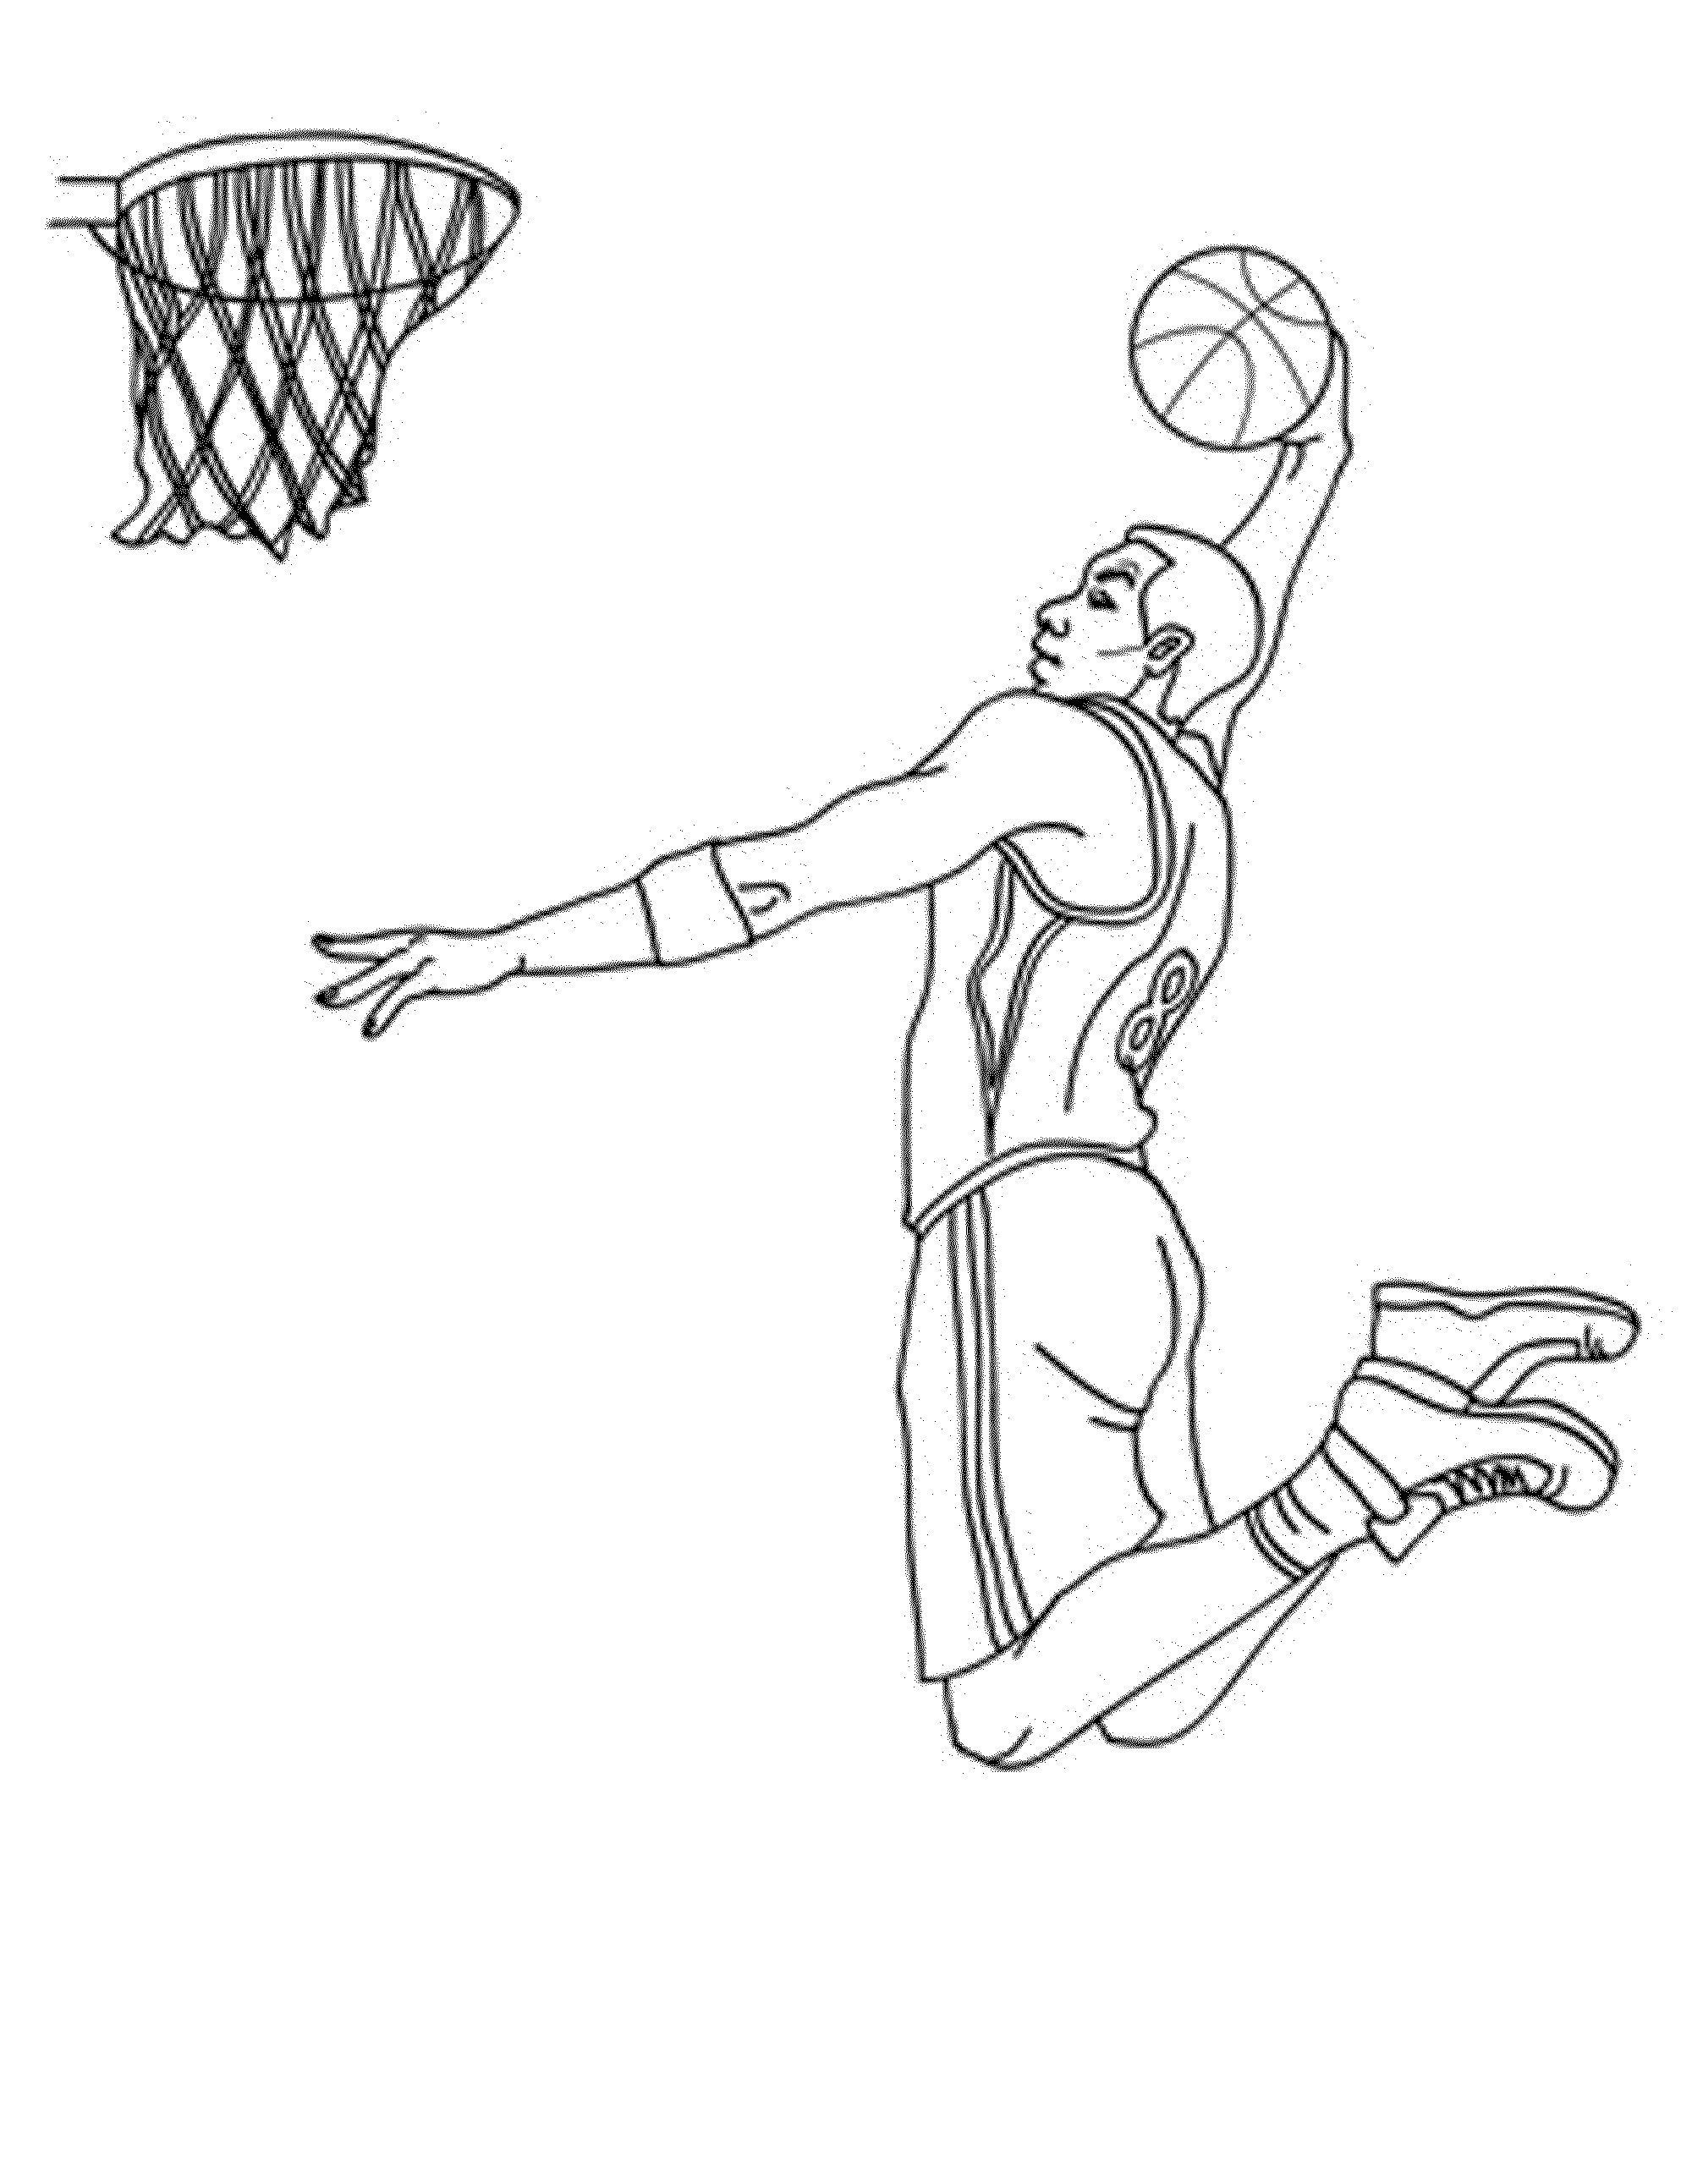 Lebron James Coloring Pages Nba Coloring Pages Of Lebron James Fresh Printable Best Bltidm Leri Entitlementtrap Com Sports Drawings Cute Drawings Lebron James